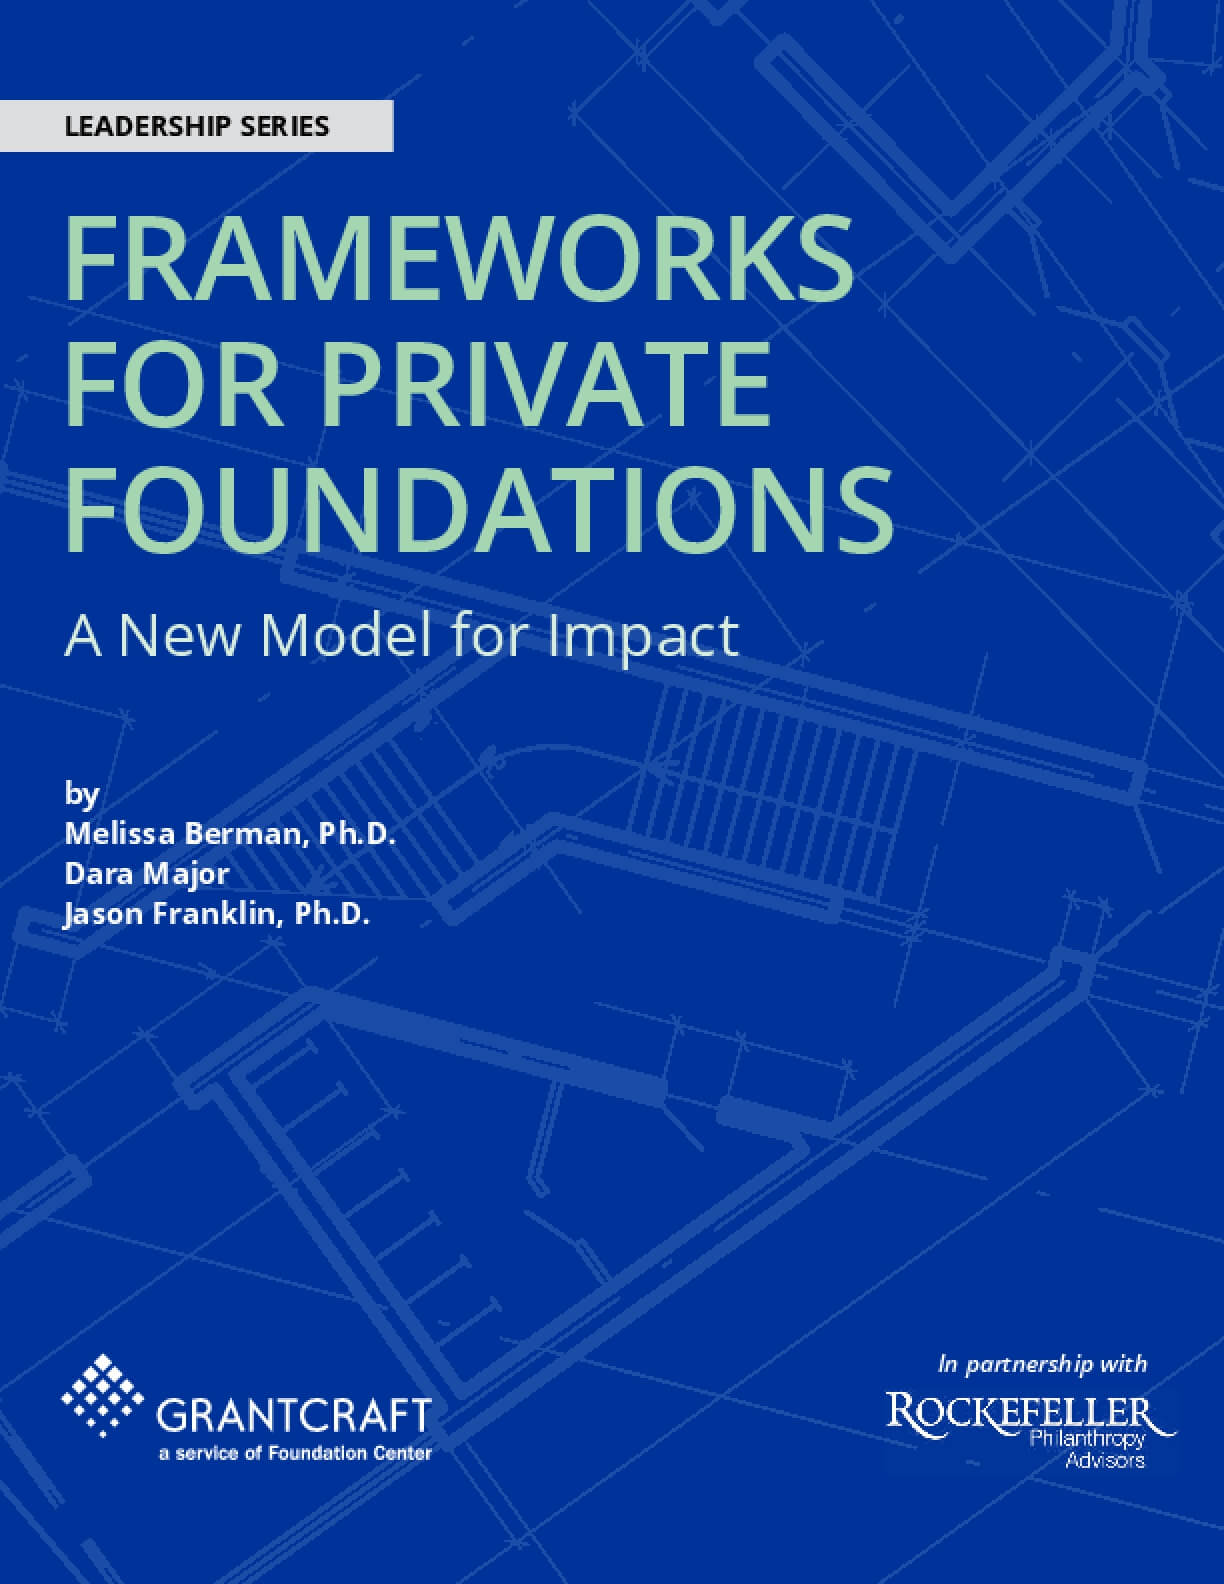 Frameworks for Private Foundations: A New Model for Impact